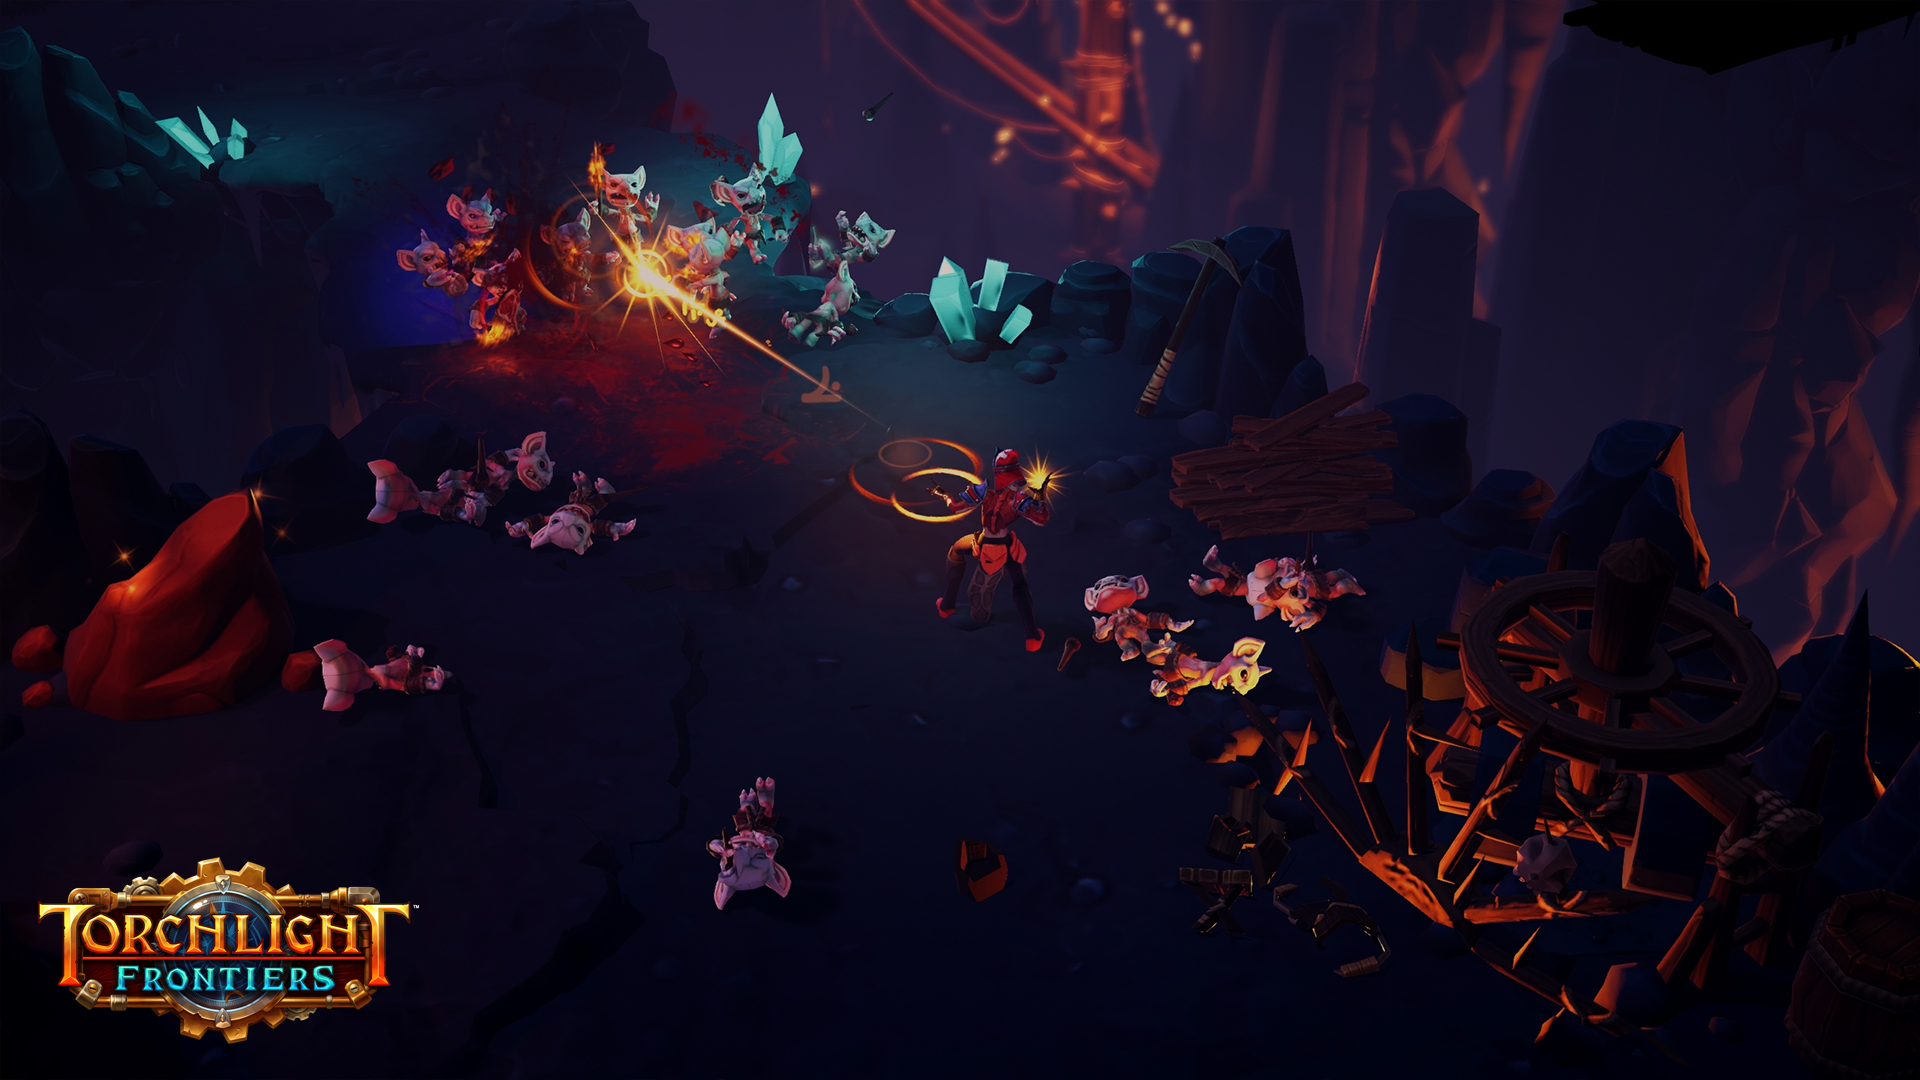 Torchlight Frontiers aims evolve action RPG MMOs novel ways